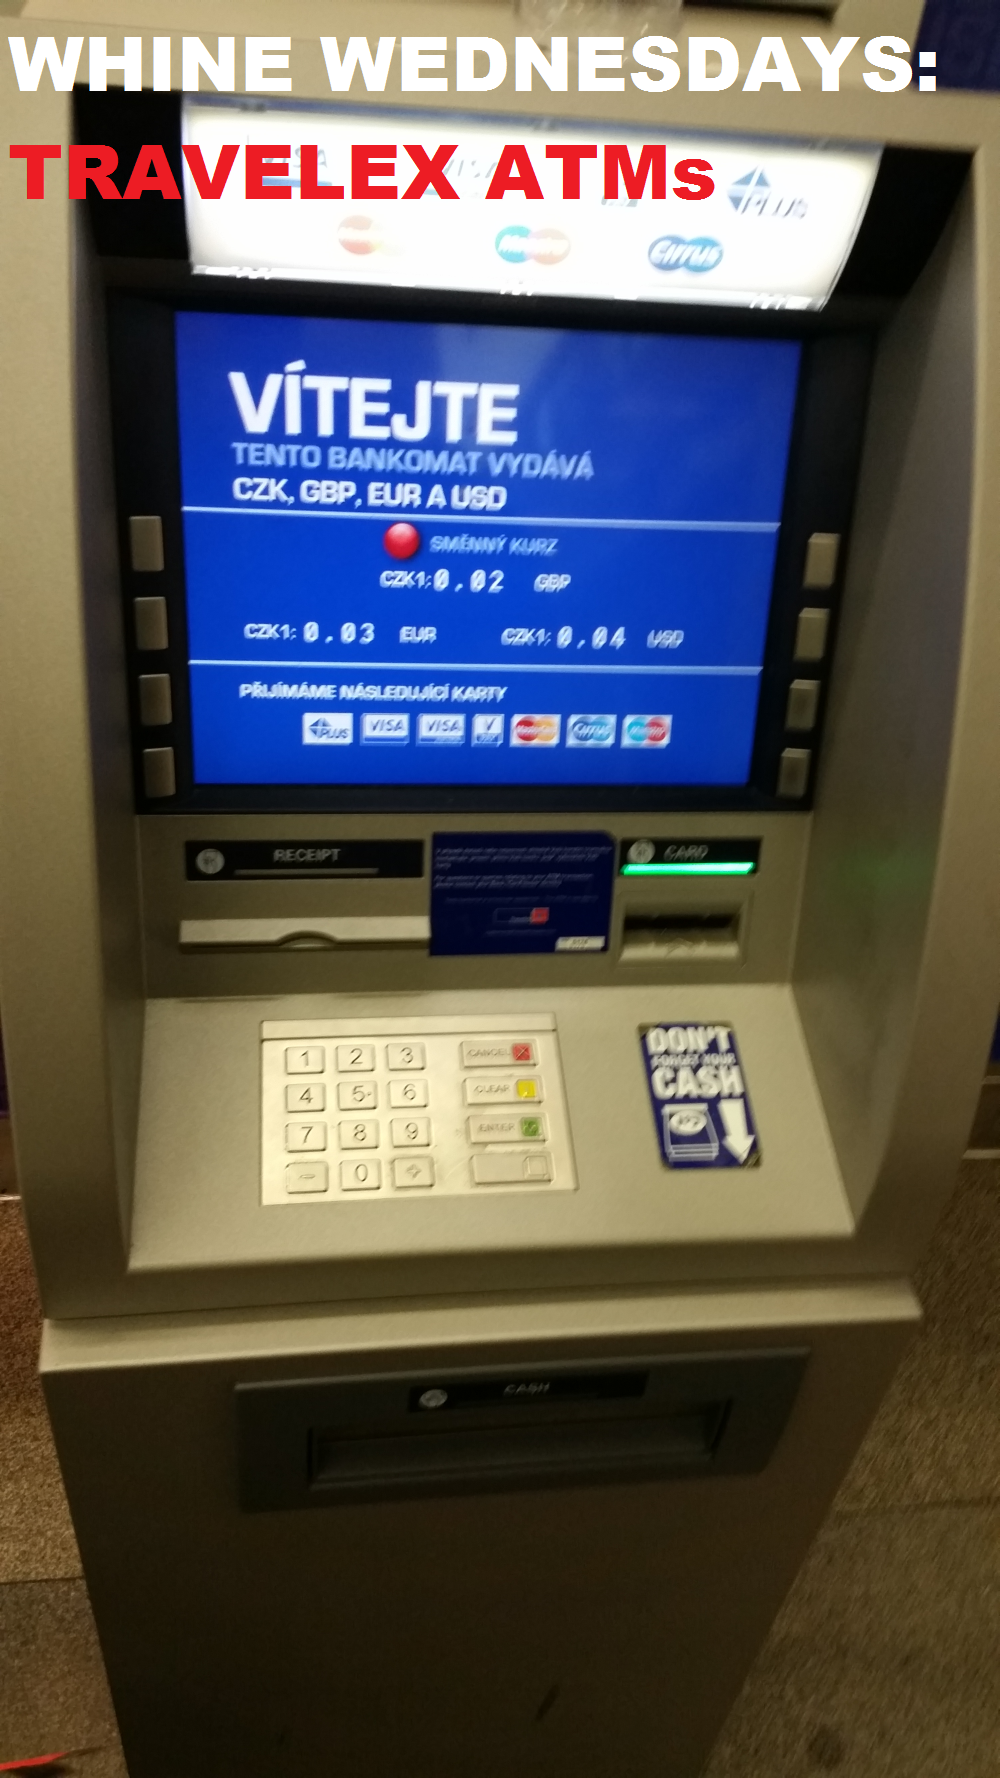 Whine Wednesdays Travelex Atm With Dynamic Conversion